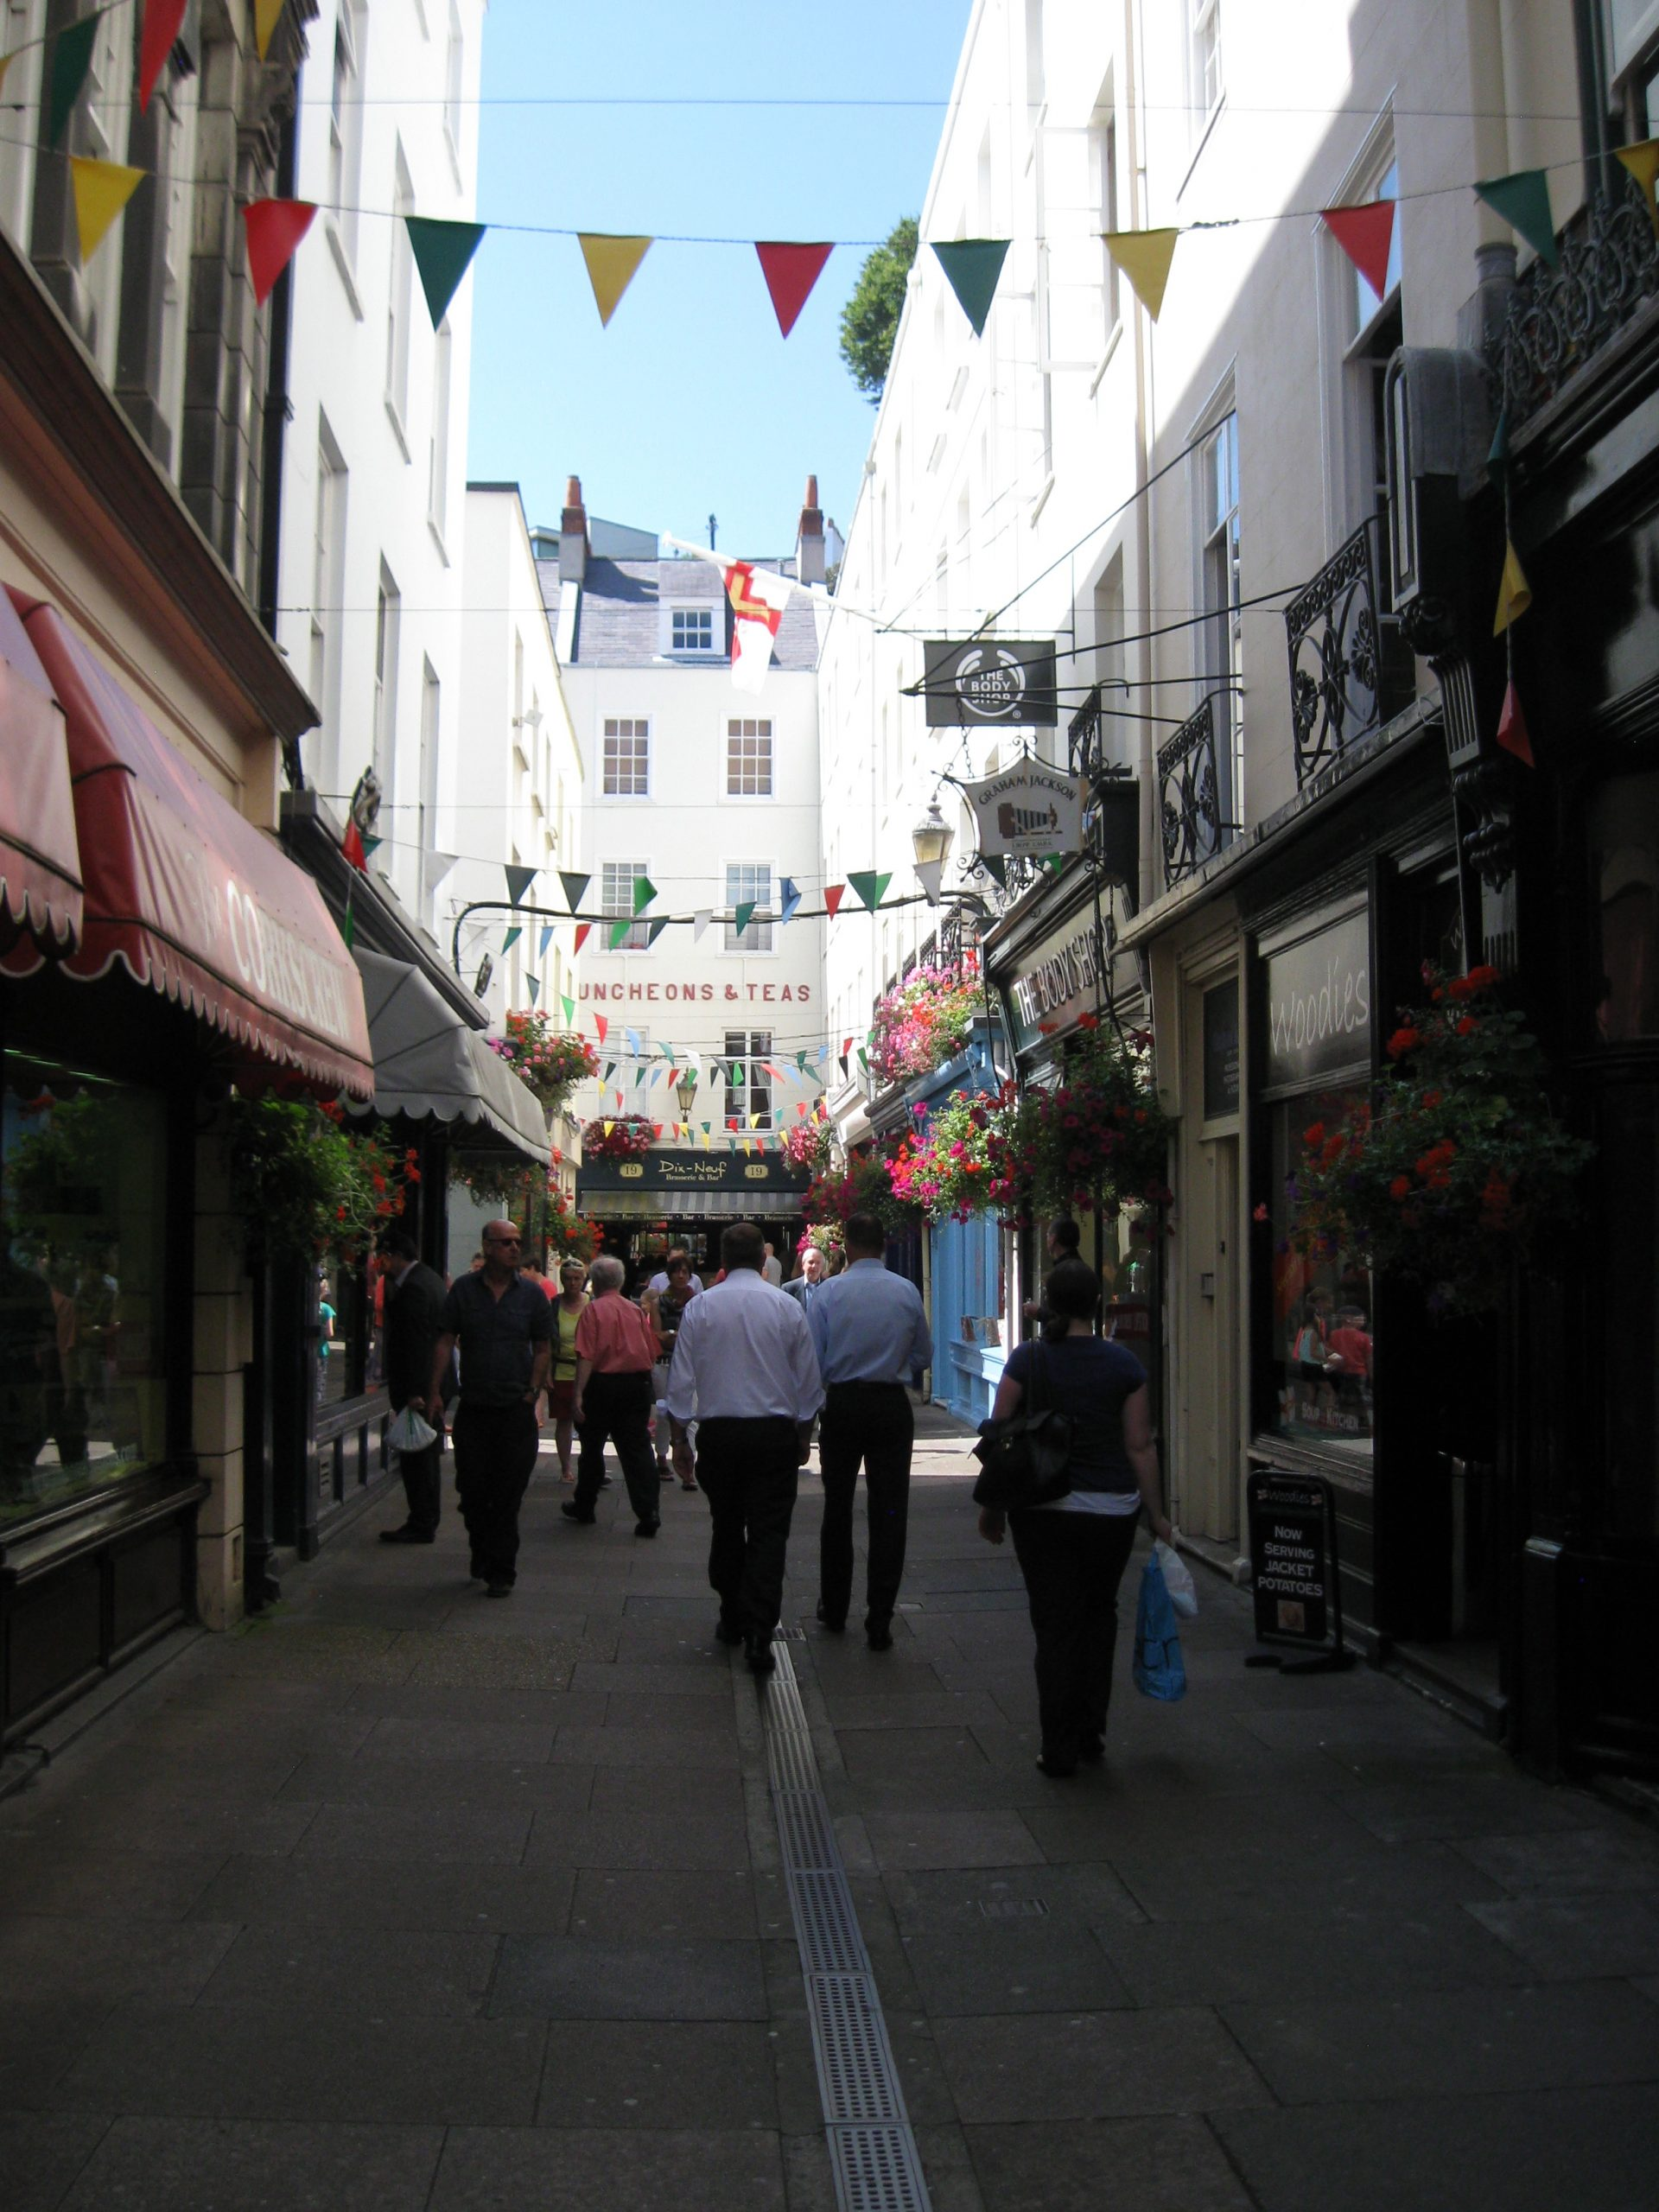 Guest Long Read Exploring World War Ii History In The Channel England Thoughts On British Electrical Outlets Anglotopianet Small Shops And Walkways Through Town Are Quite Charming There Were Many Options Available For Lunch Thanks To A Locals Advice We Settled